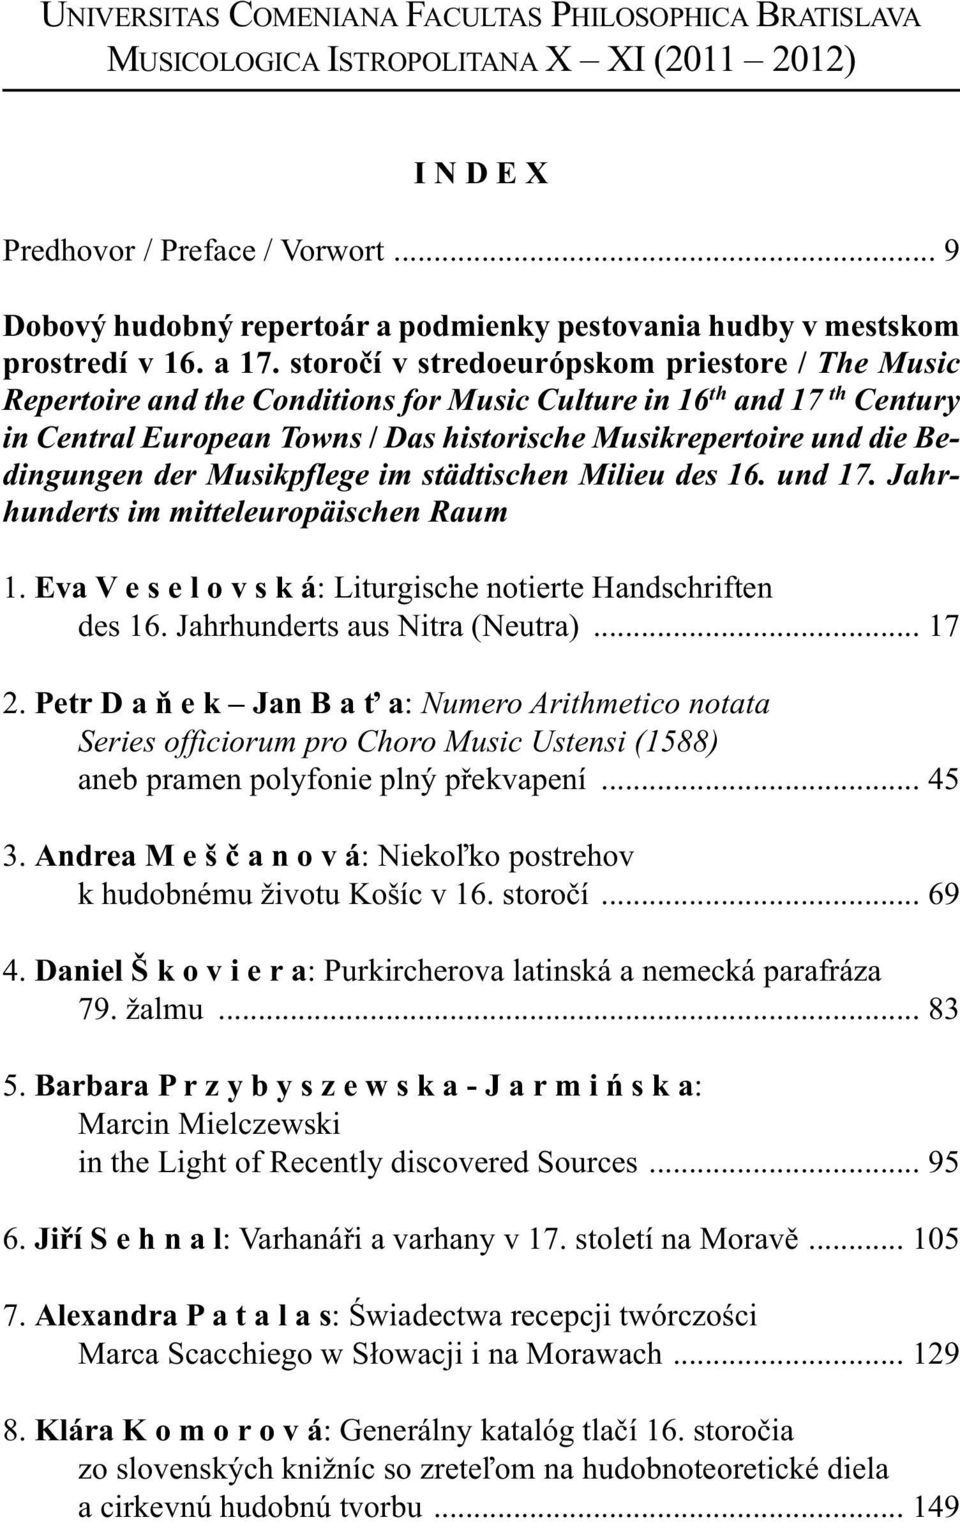 storočí v stredoeurópskom priestore / The Music Repertoire and the Conditions for Music Culture in 16 th and 17 th Century in Central European Towns / Das historische Musikrepertoire und die